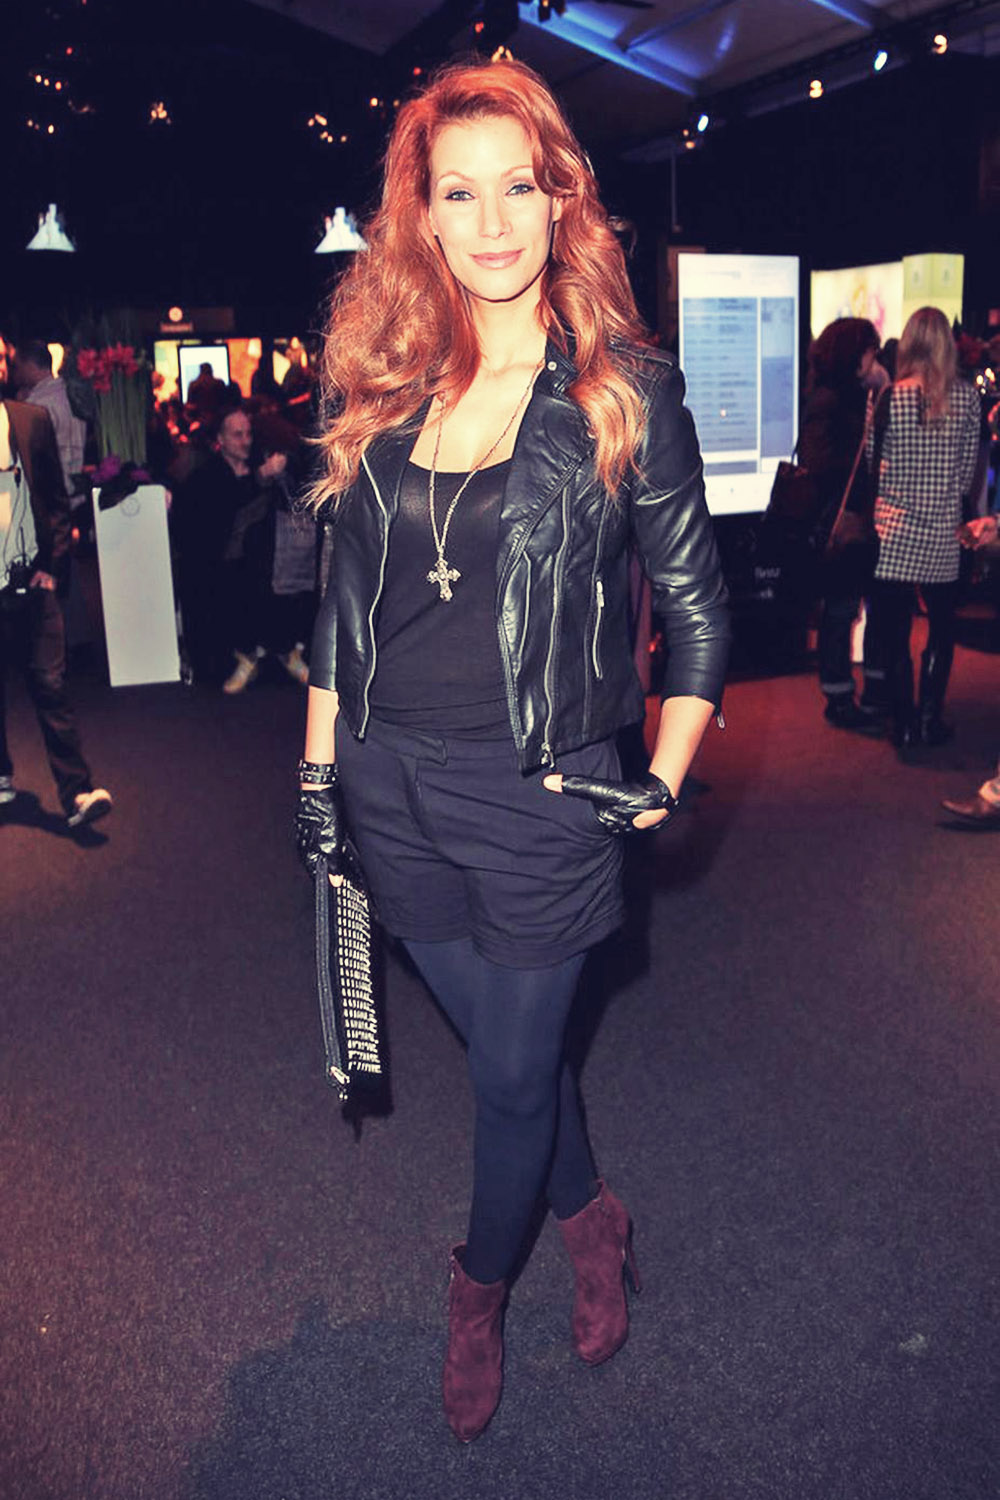 Yasmina Filali attends Mercedes-Benz Fashion Week Berlin 2013